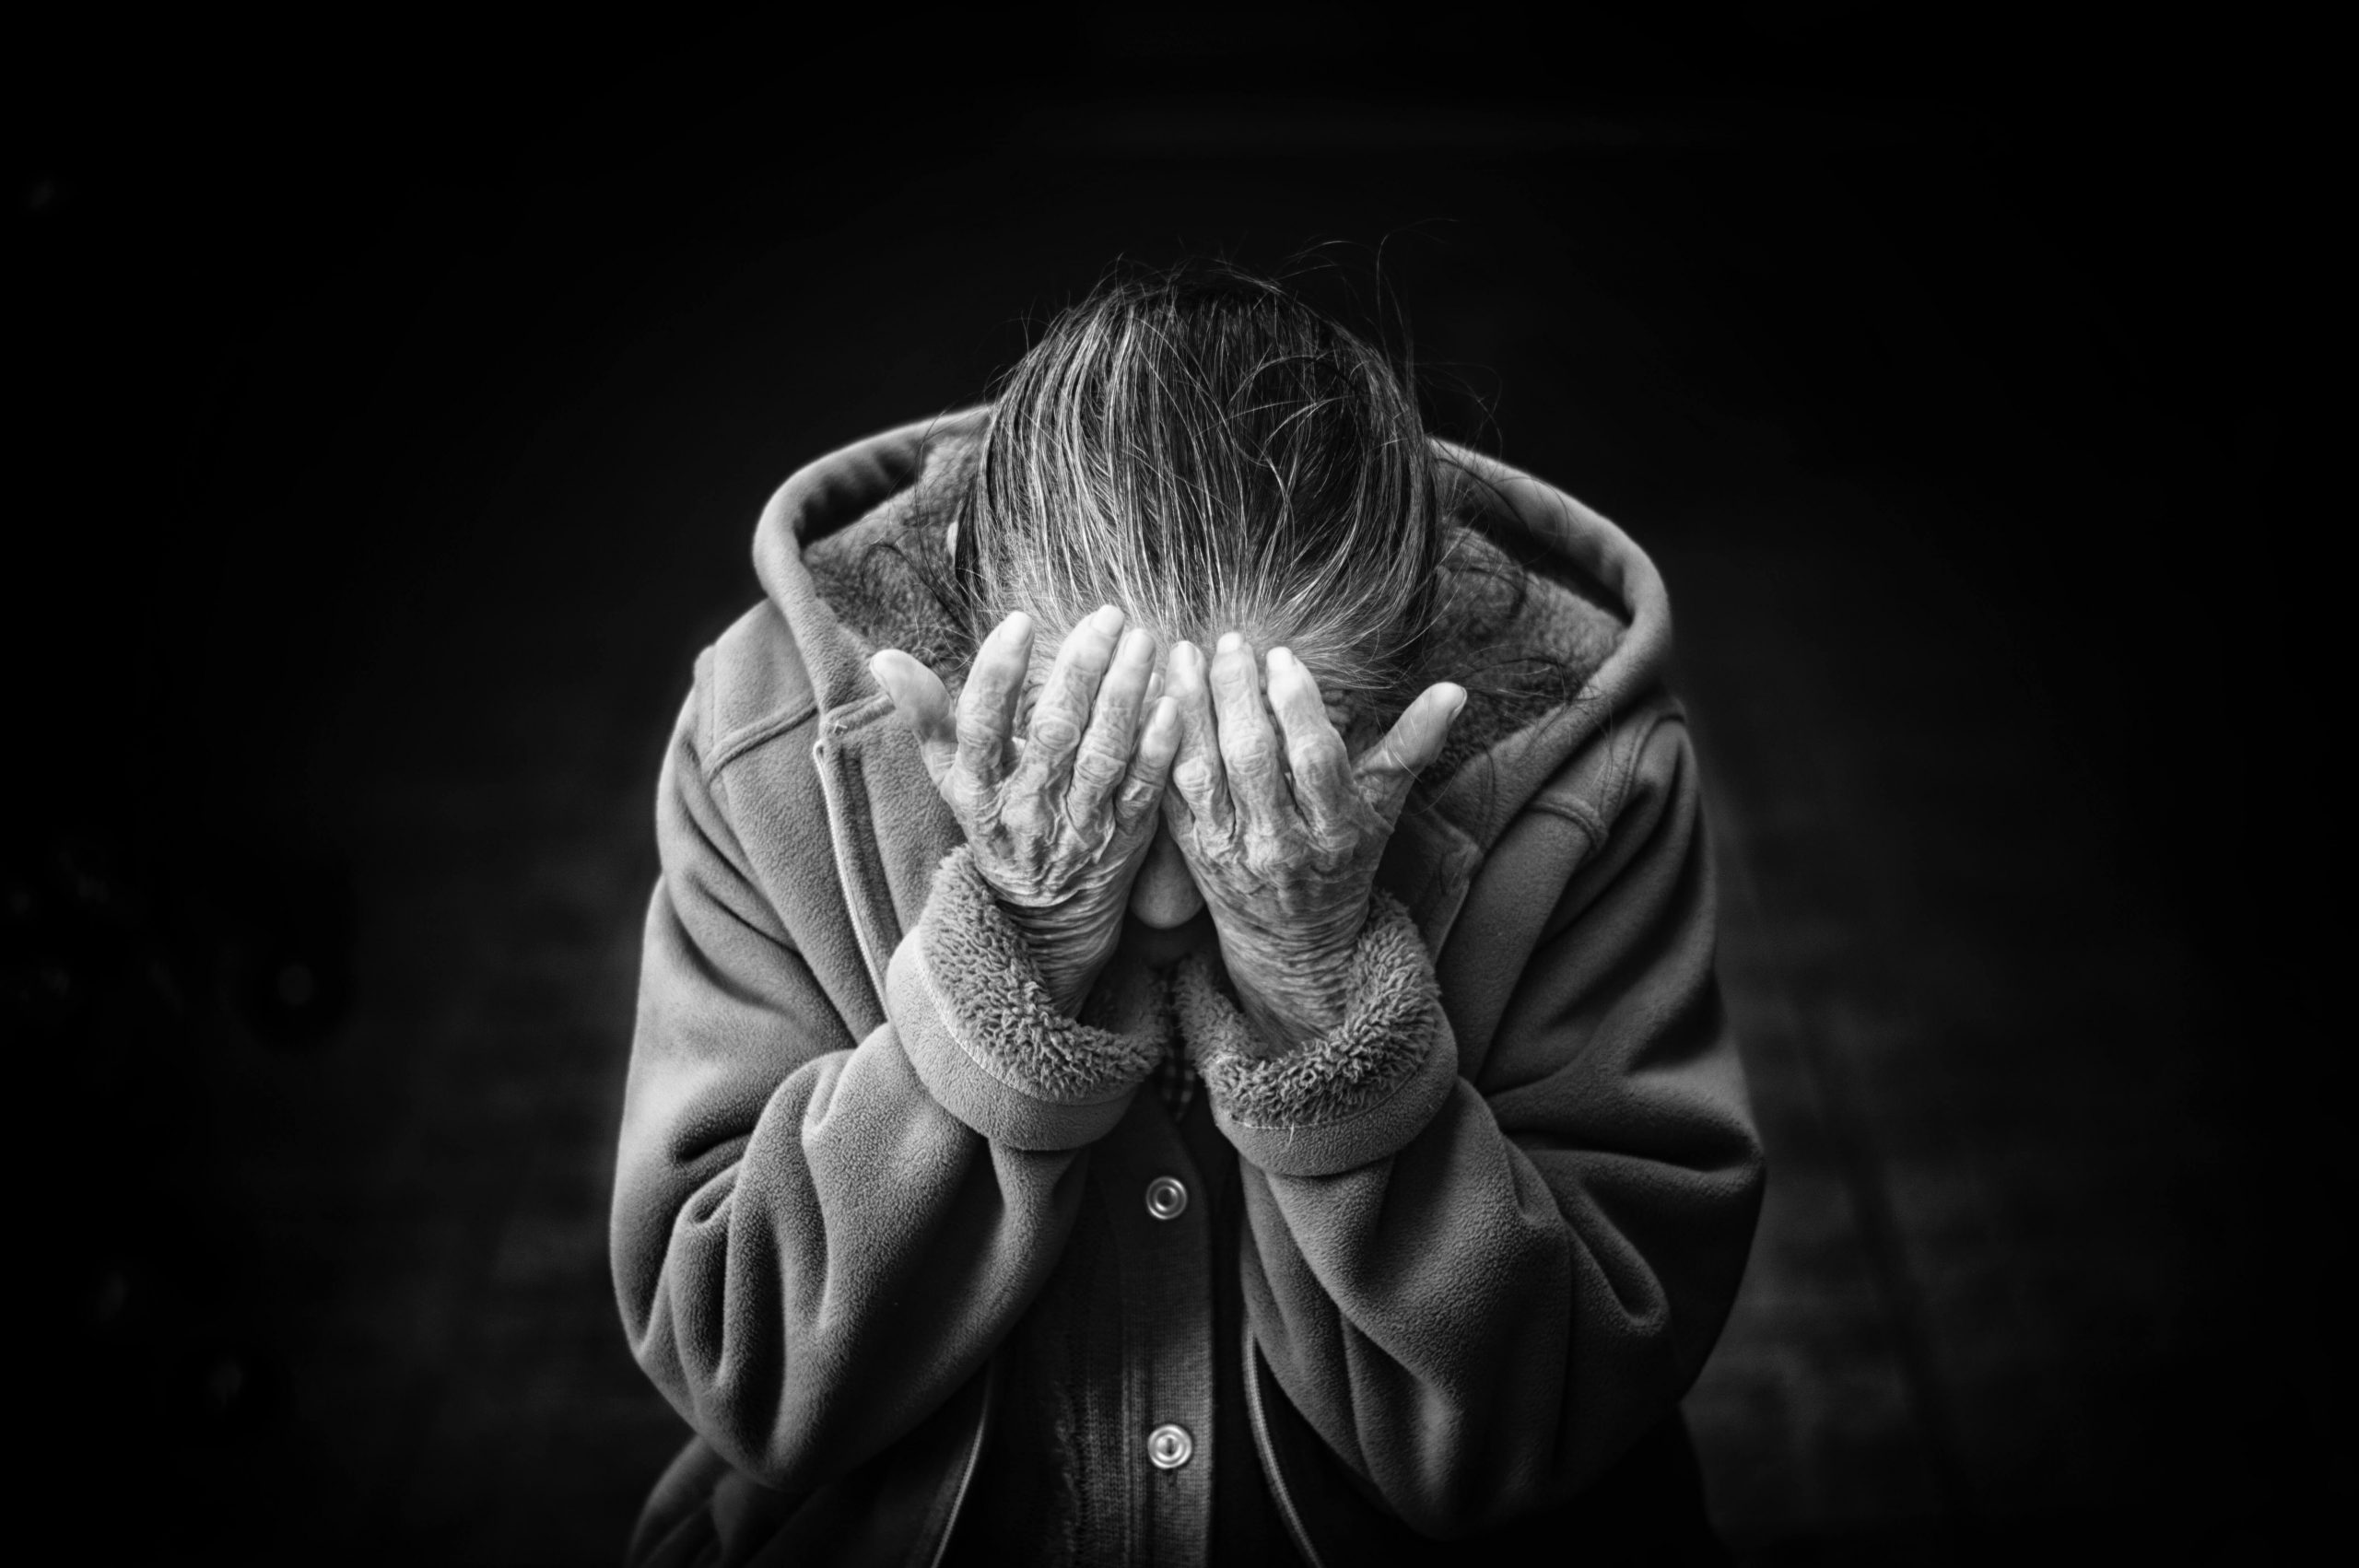 Dr. Friedemann discusses how to manage grief and loss